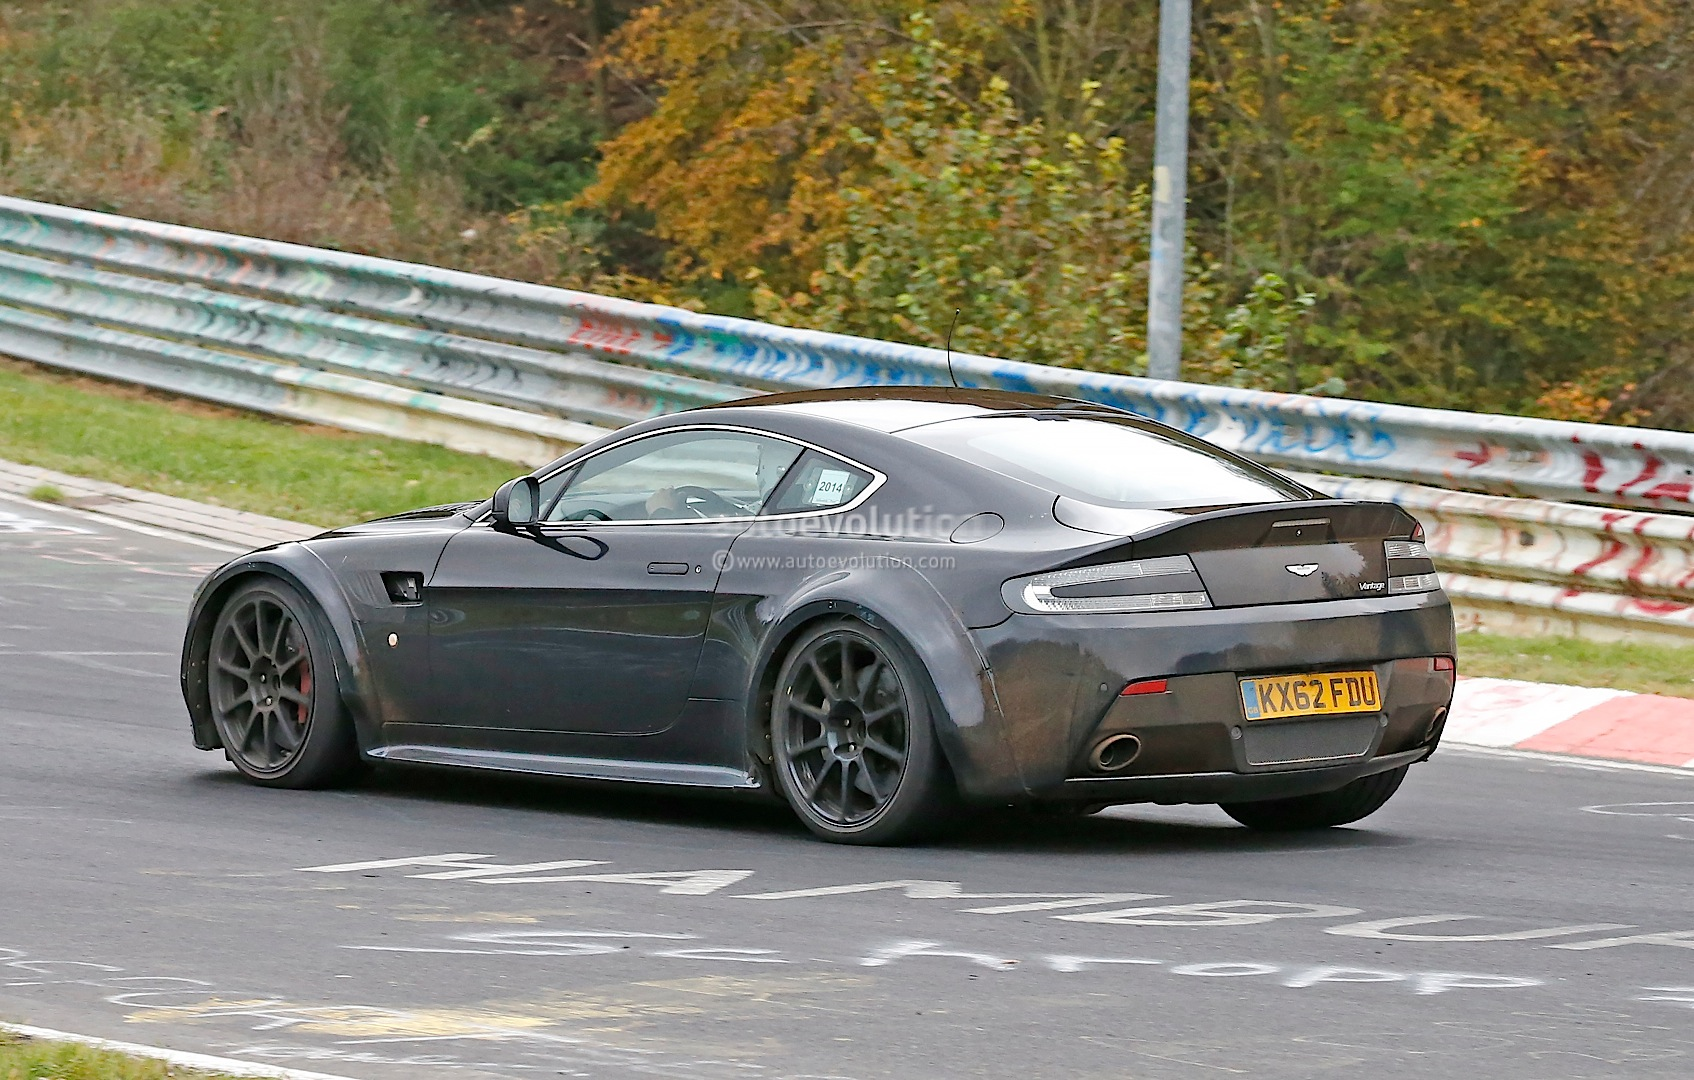 Turbo Aston Martin Prototype Spied Lapping The Nurburgring It S Amg Powered Autoevolution